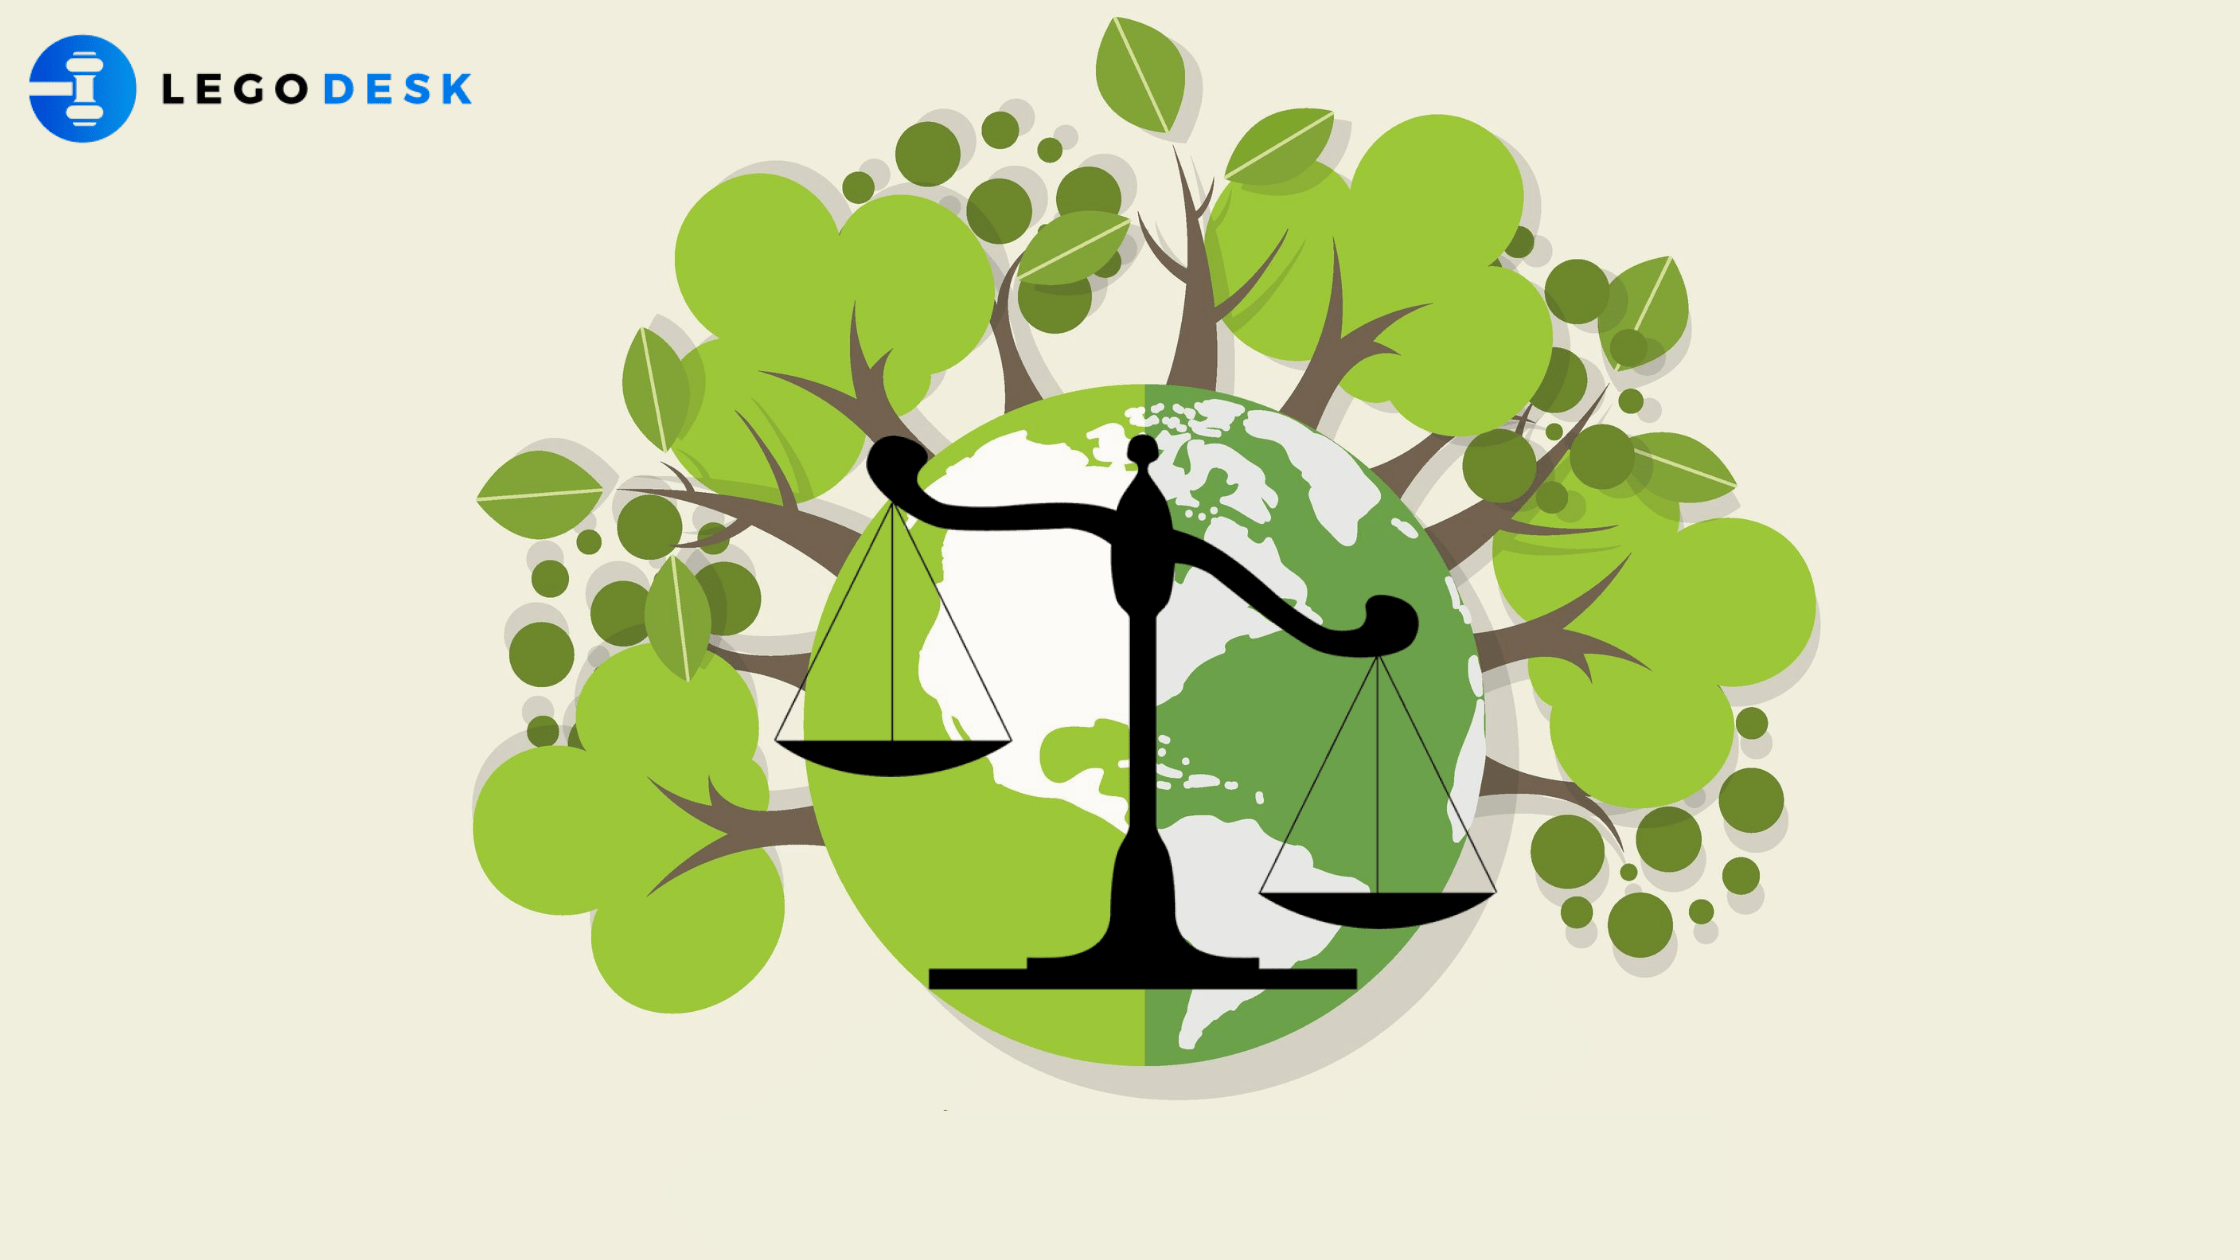 Impact of climate crisis on legal profession